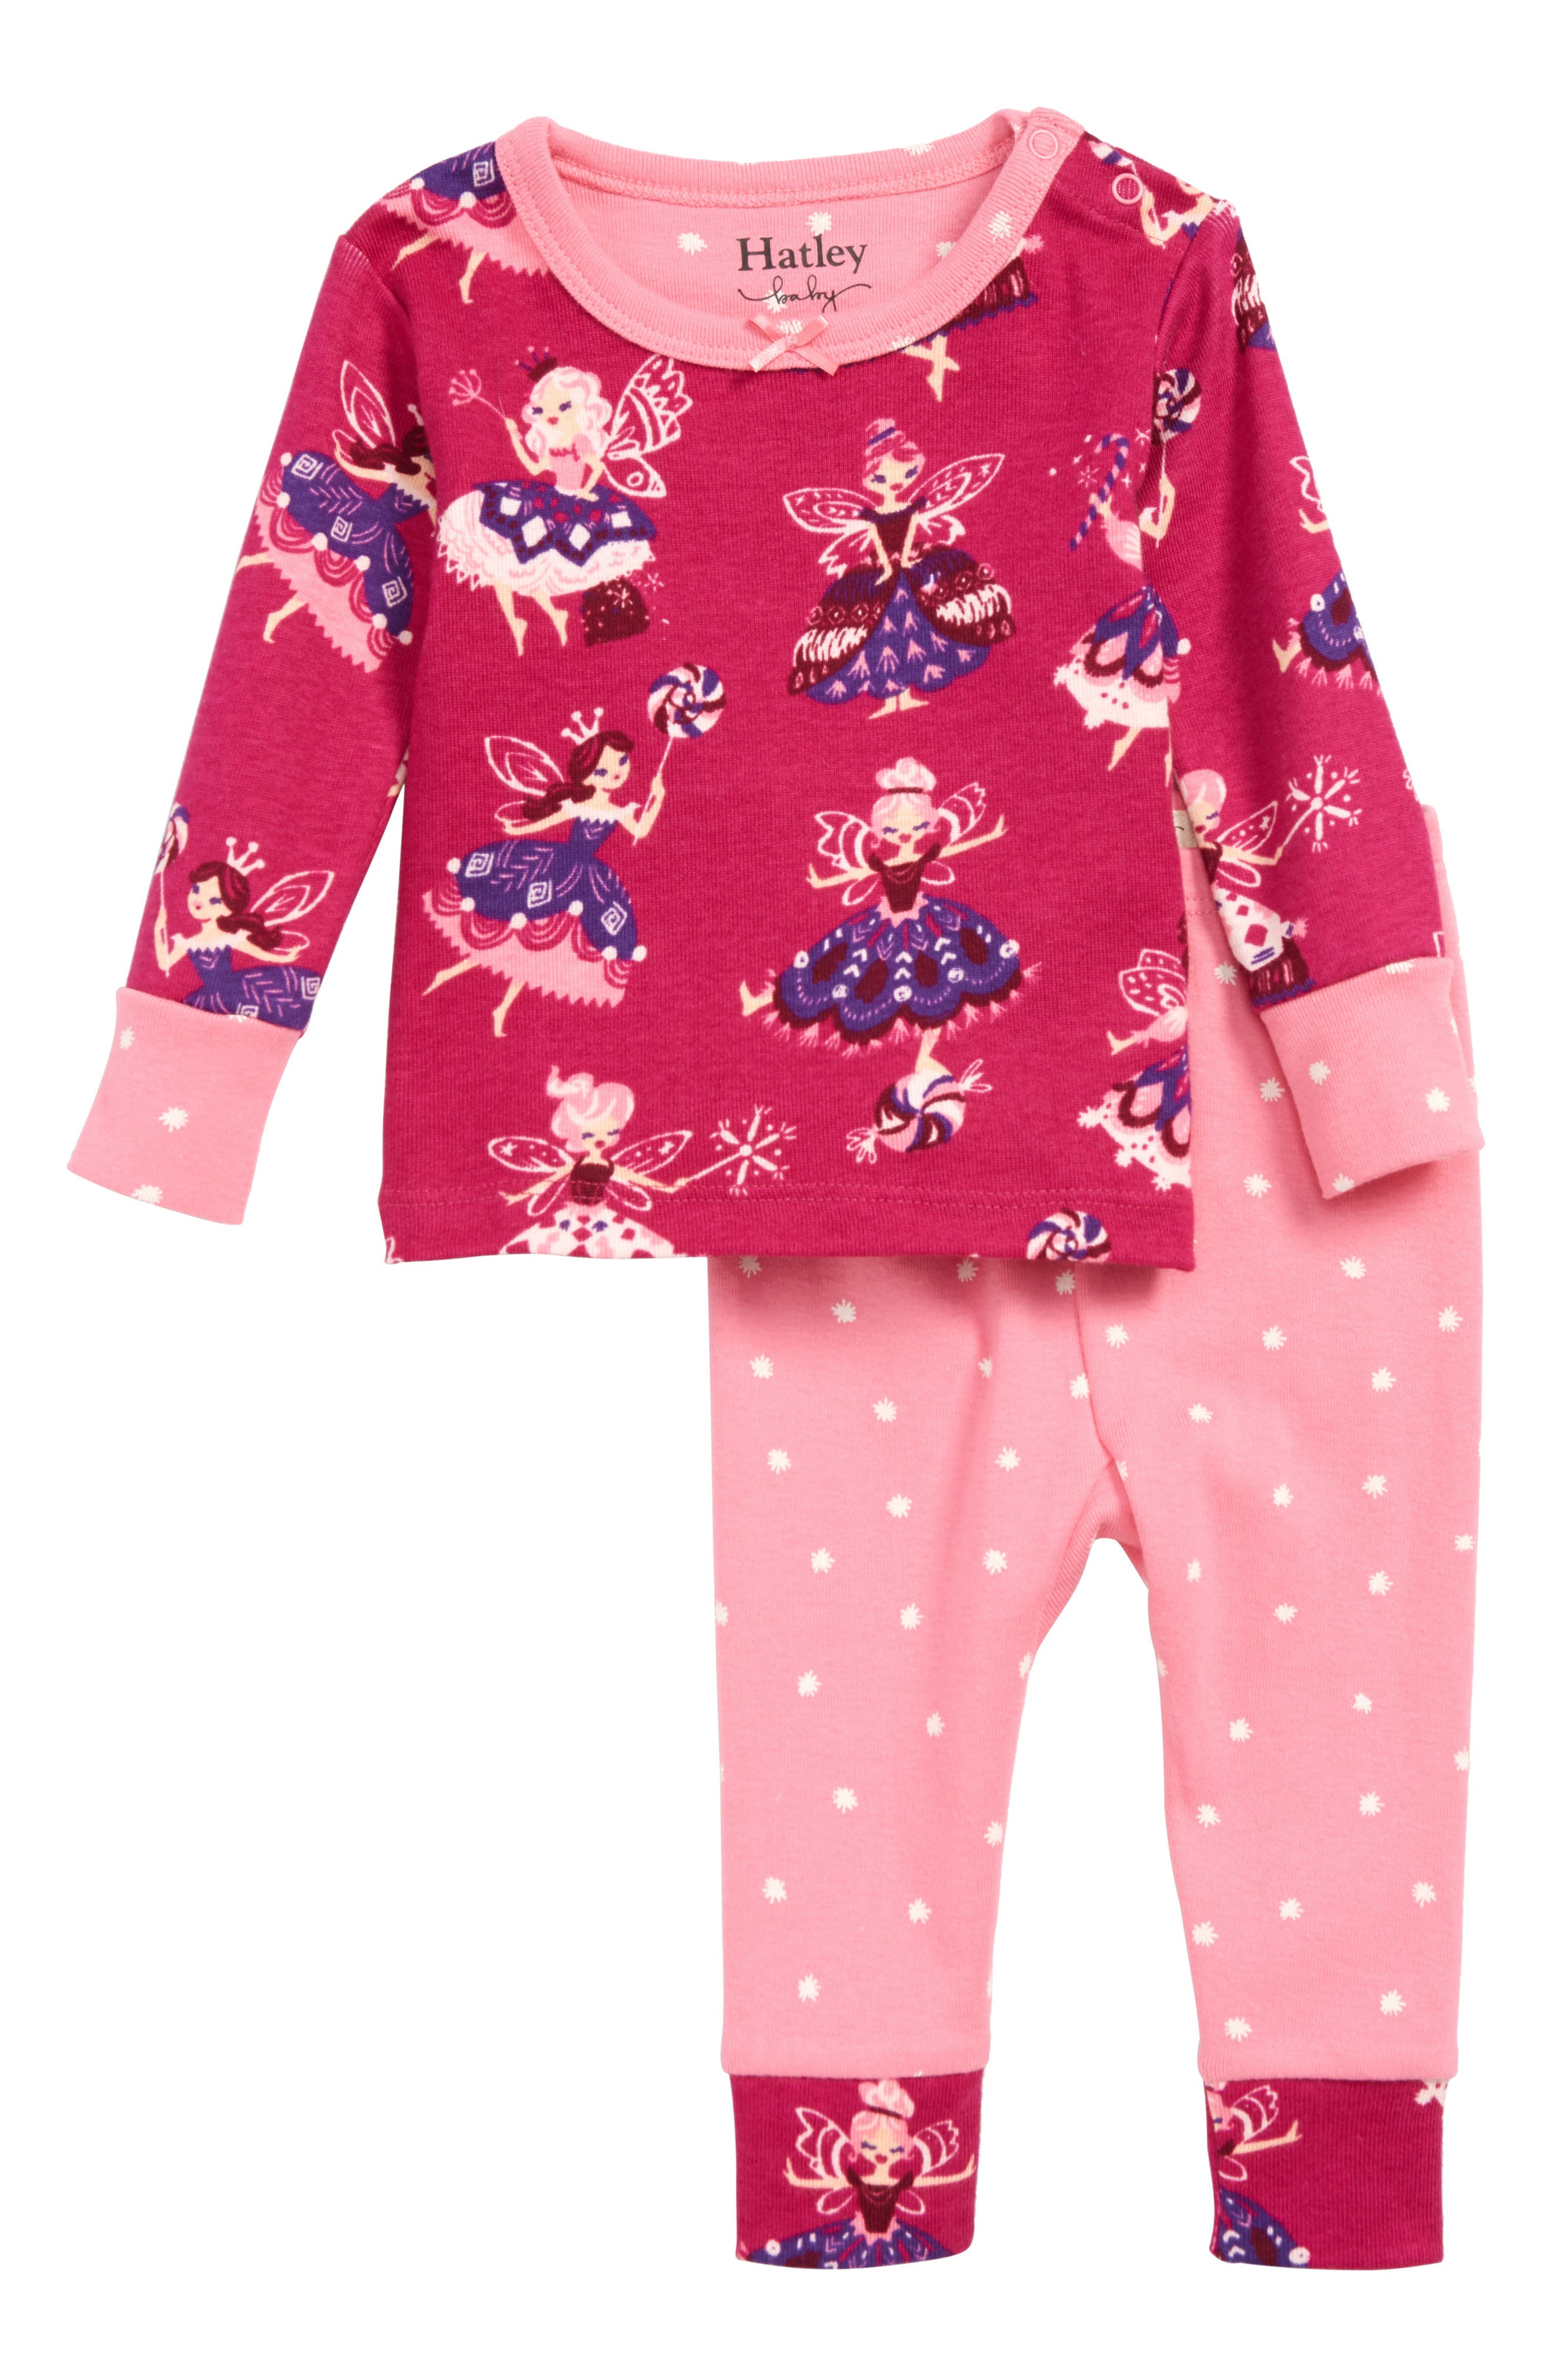 Organic Cotton Fitted Two-Piece Pajamas,                             Main thumbnail 1, color,                             650